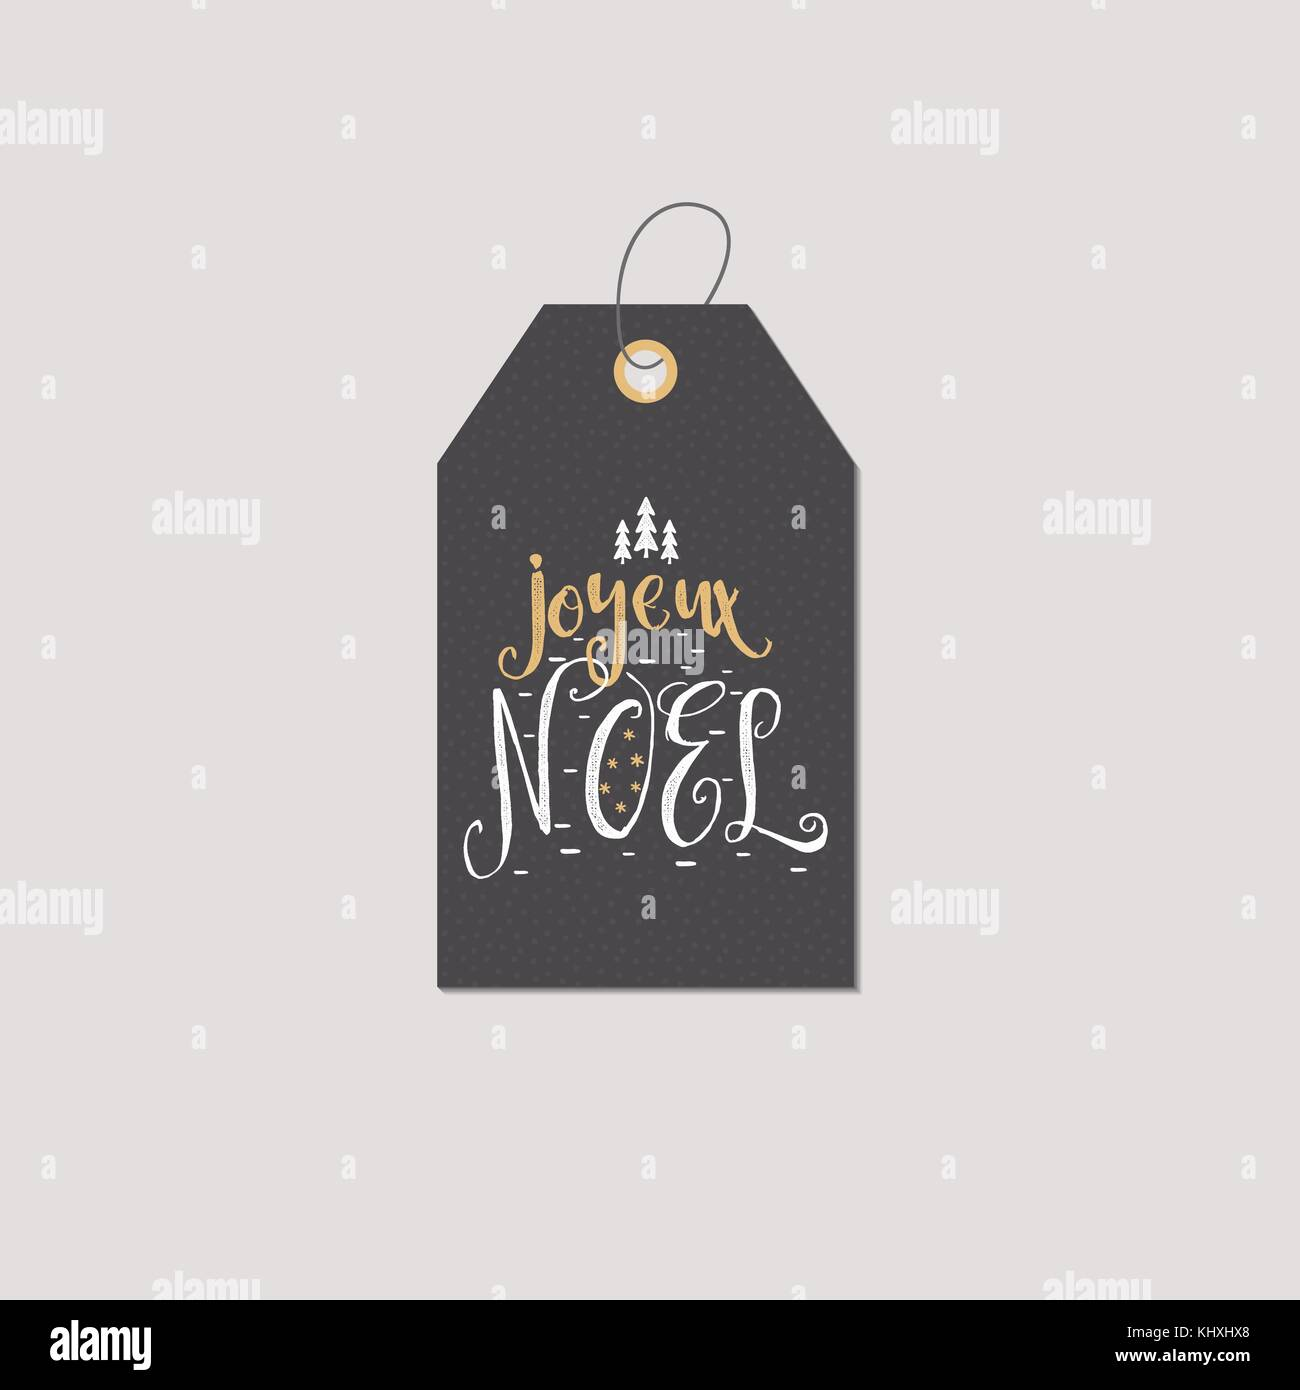 Merry Christmas In French Stock Photos & Merry Christmas In French ...